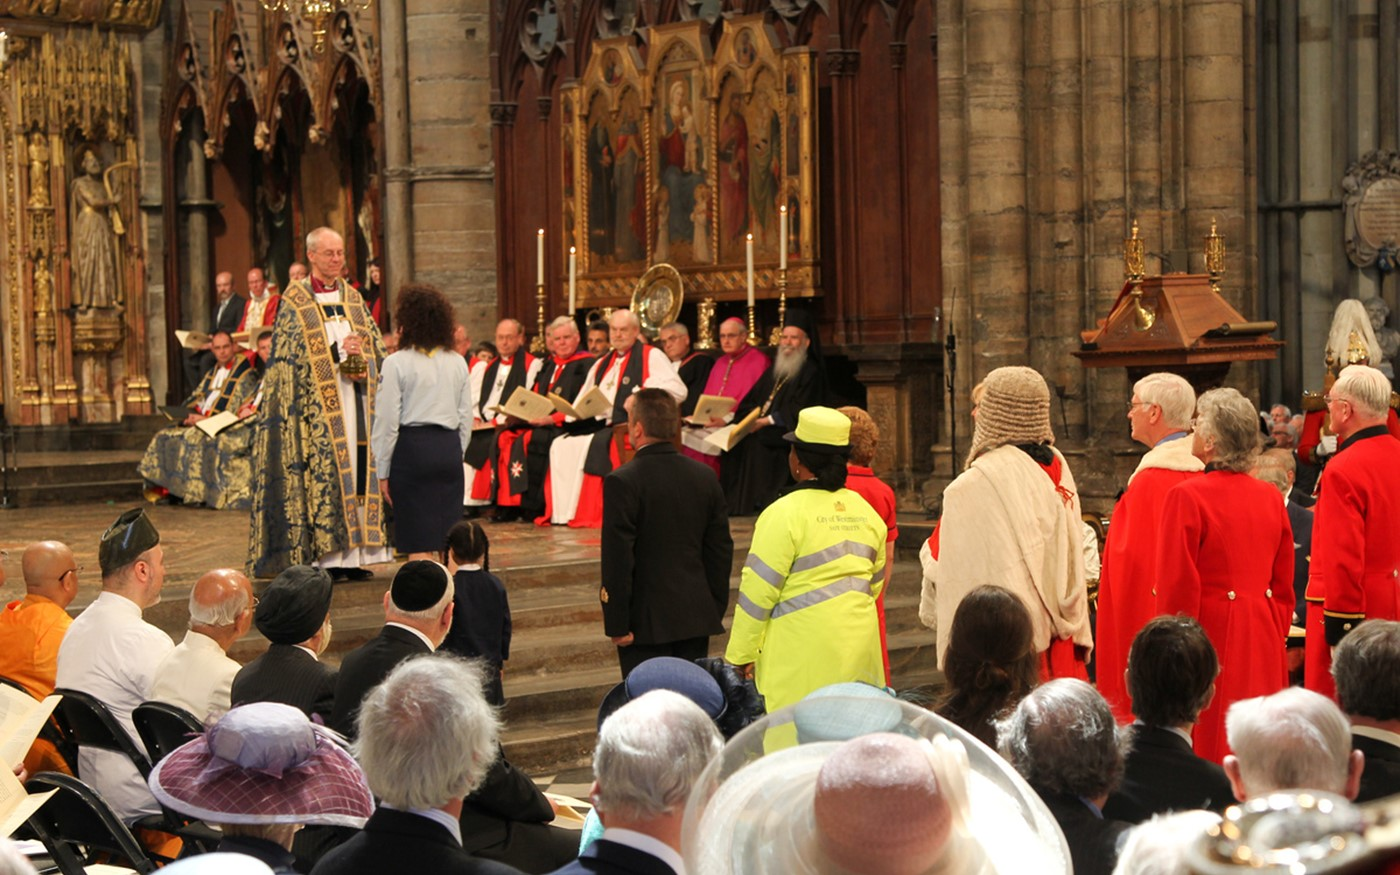 A flask of oil is carried to the High Altar by representatives of the United Kingdom where it is received by the Archbishop of Canterbury